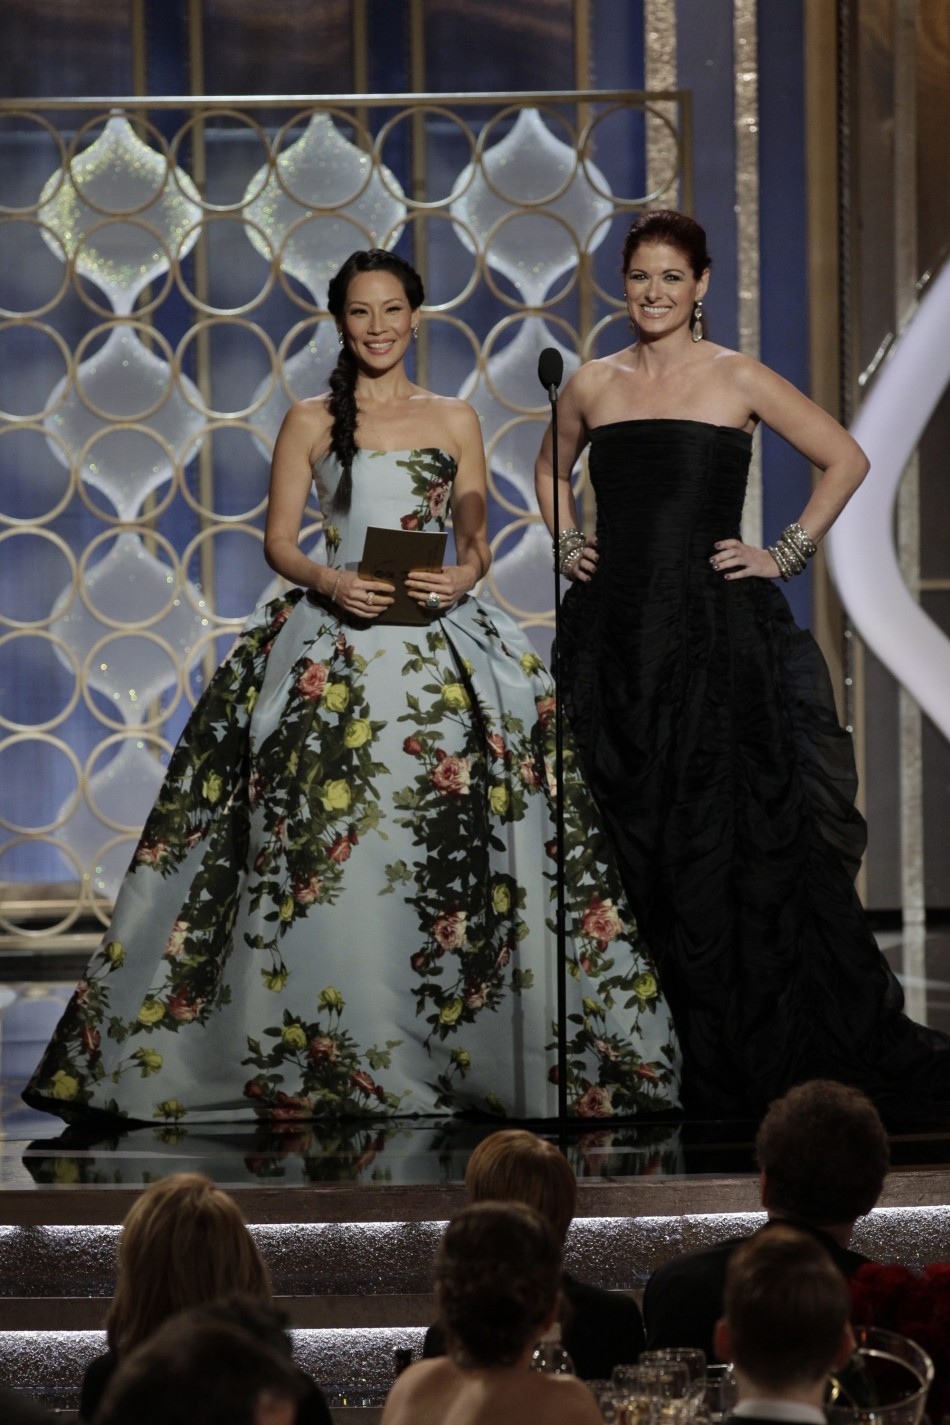 Presenters Lucy Liu (L) and Debra Messing at the Golden Globe Awards in Beverly Hills